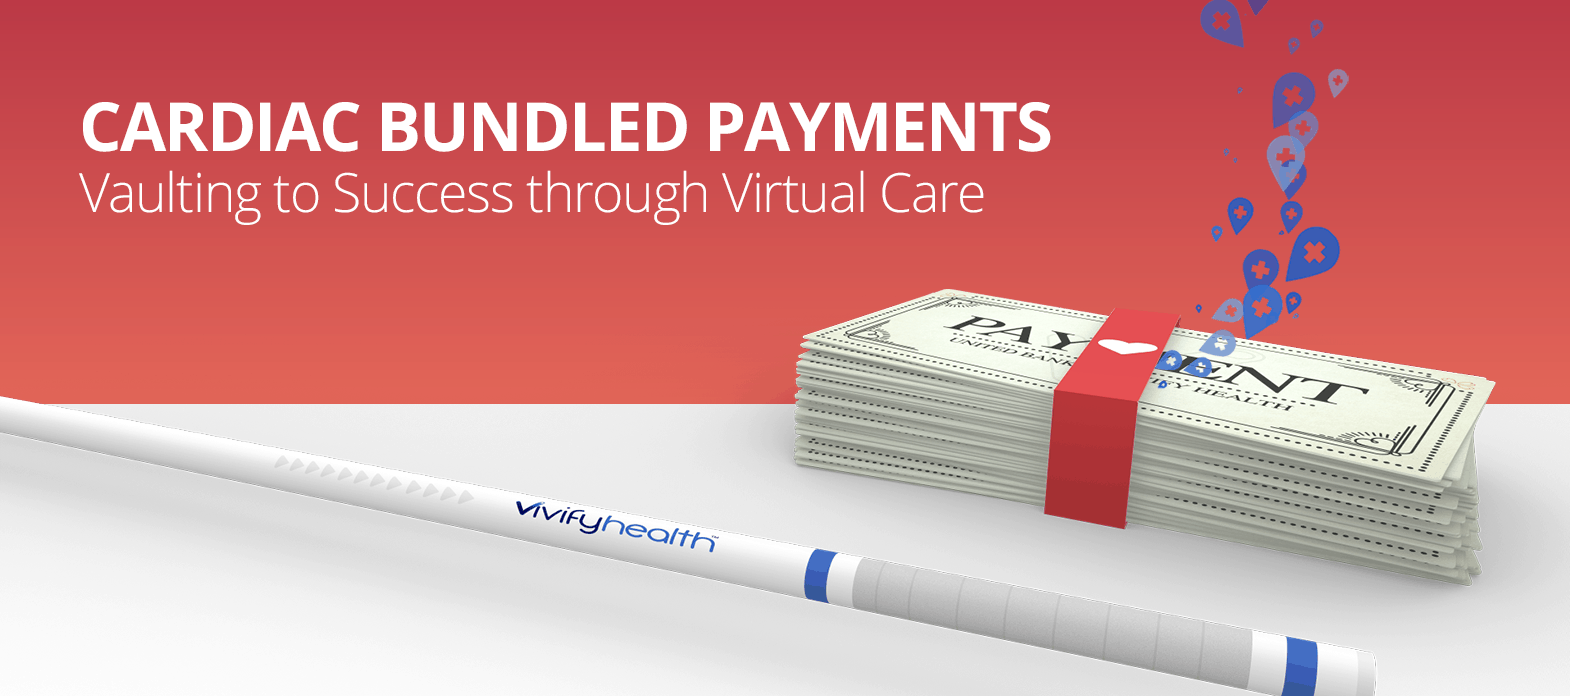 Cardiac Bundled Payments: Vaulting to Success Through Virtual Care